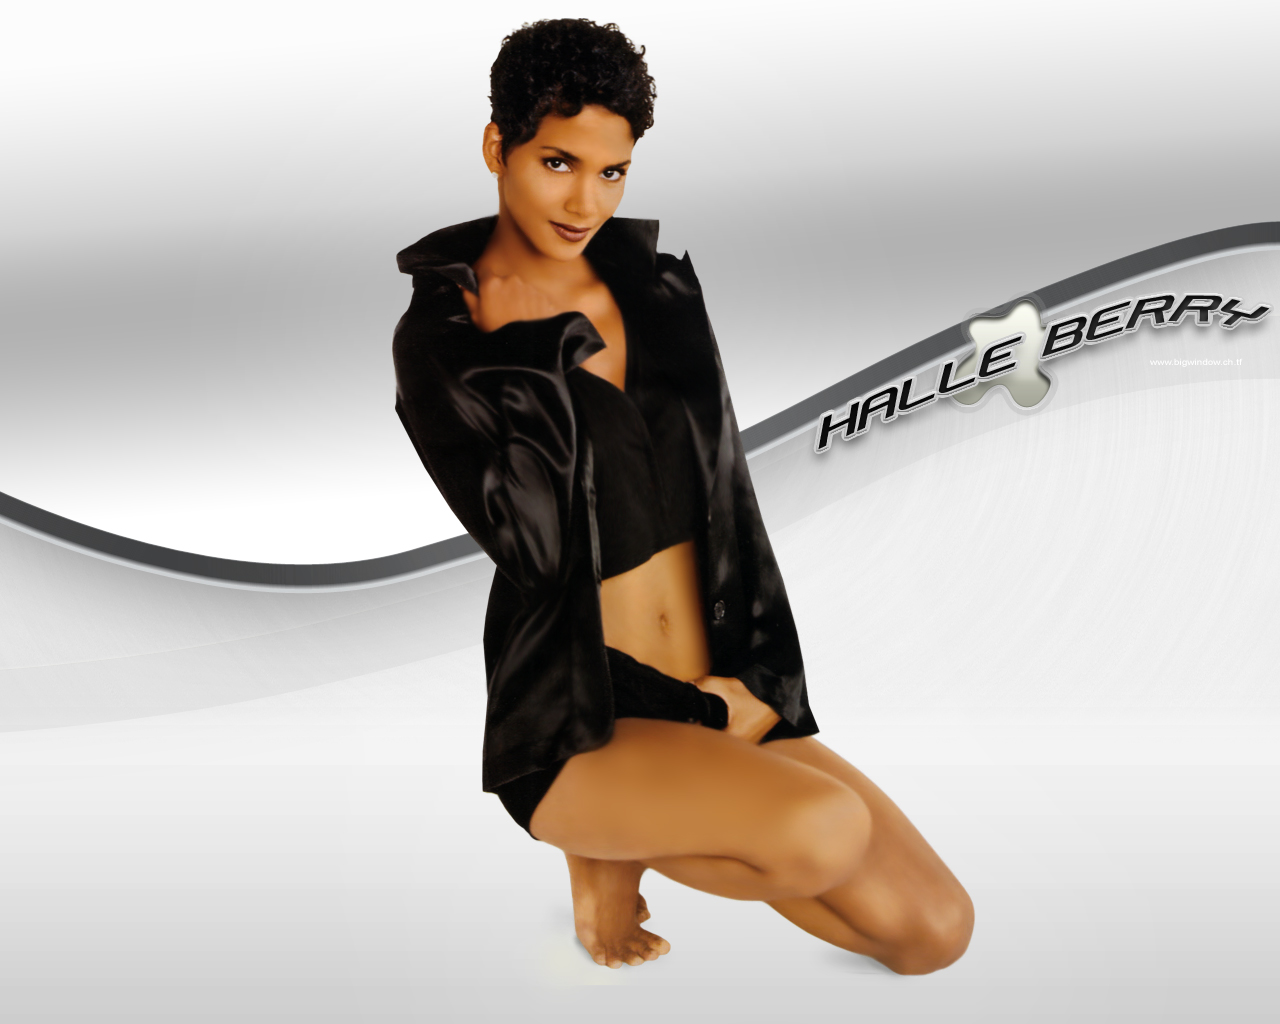 Halle berry Wallpapers. Photos, images, Halle berry pictures (9157)